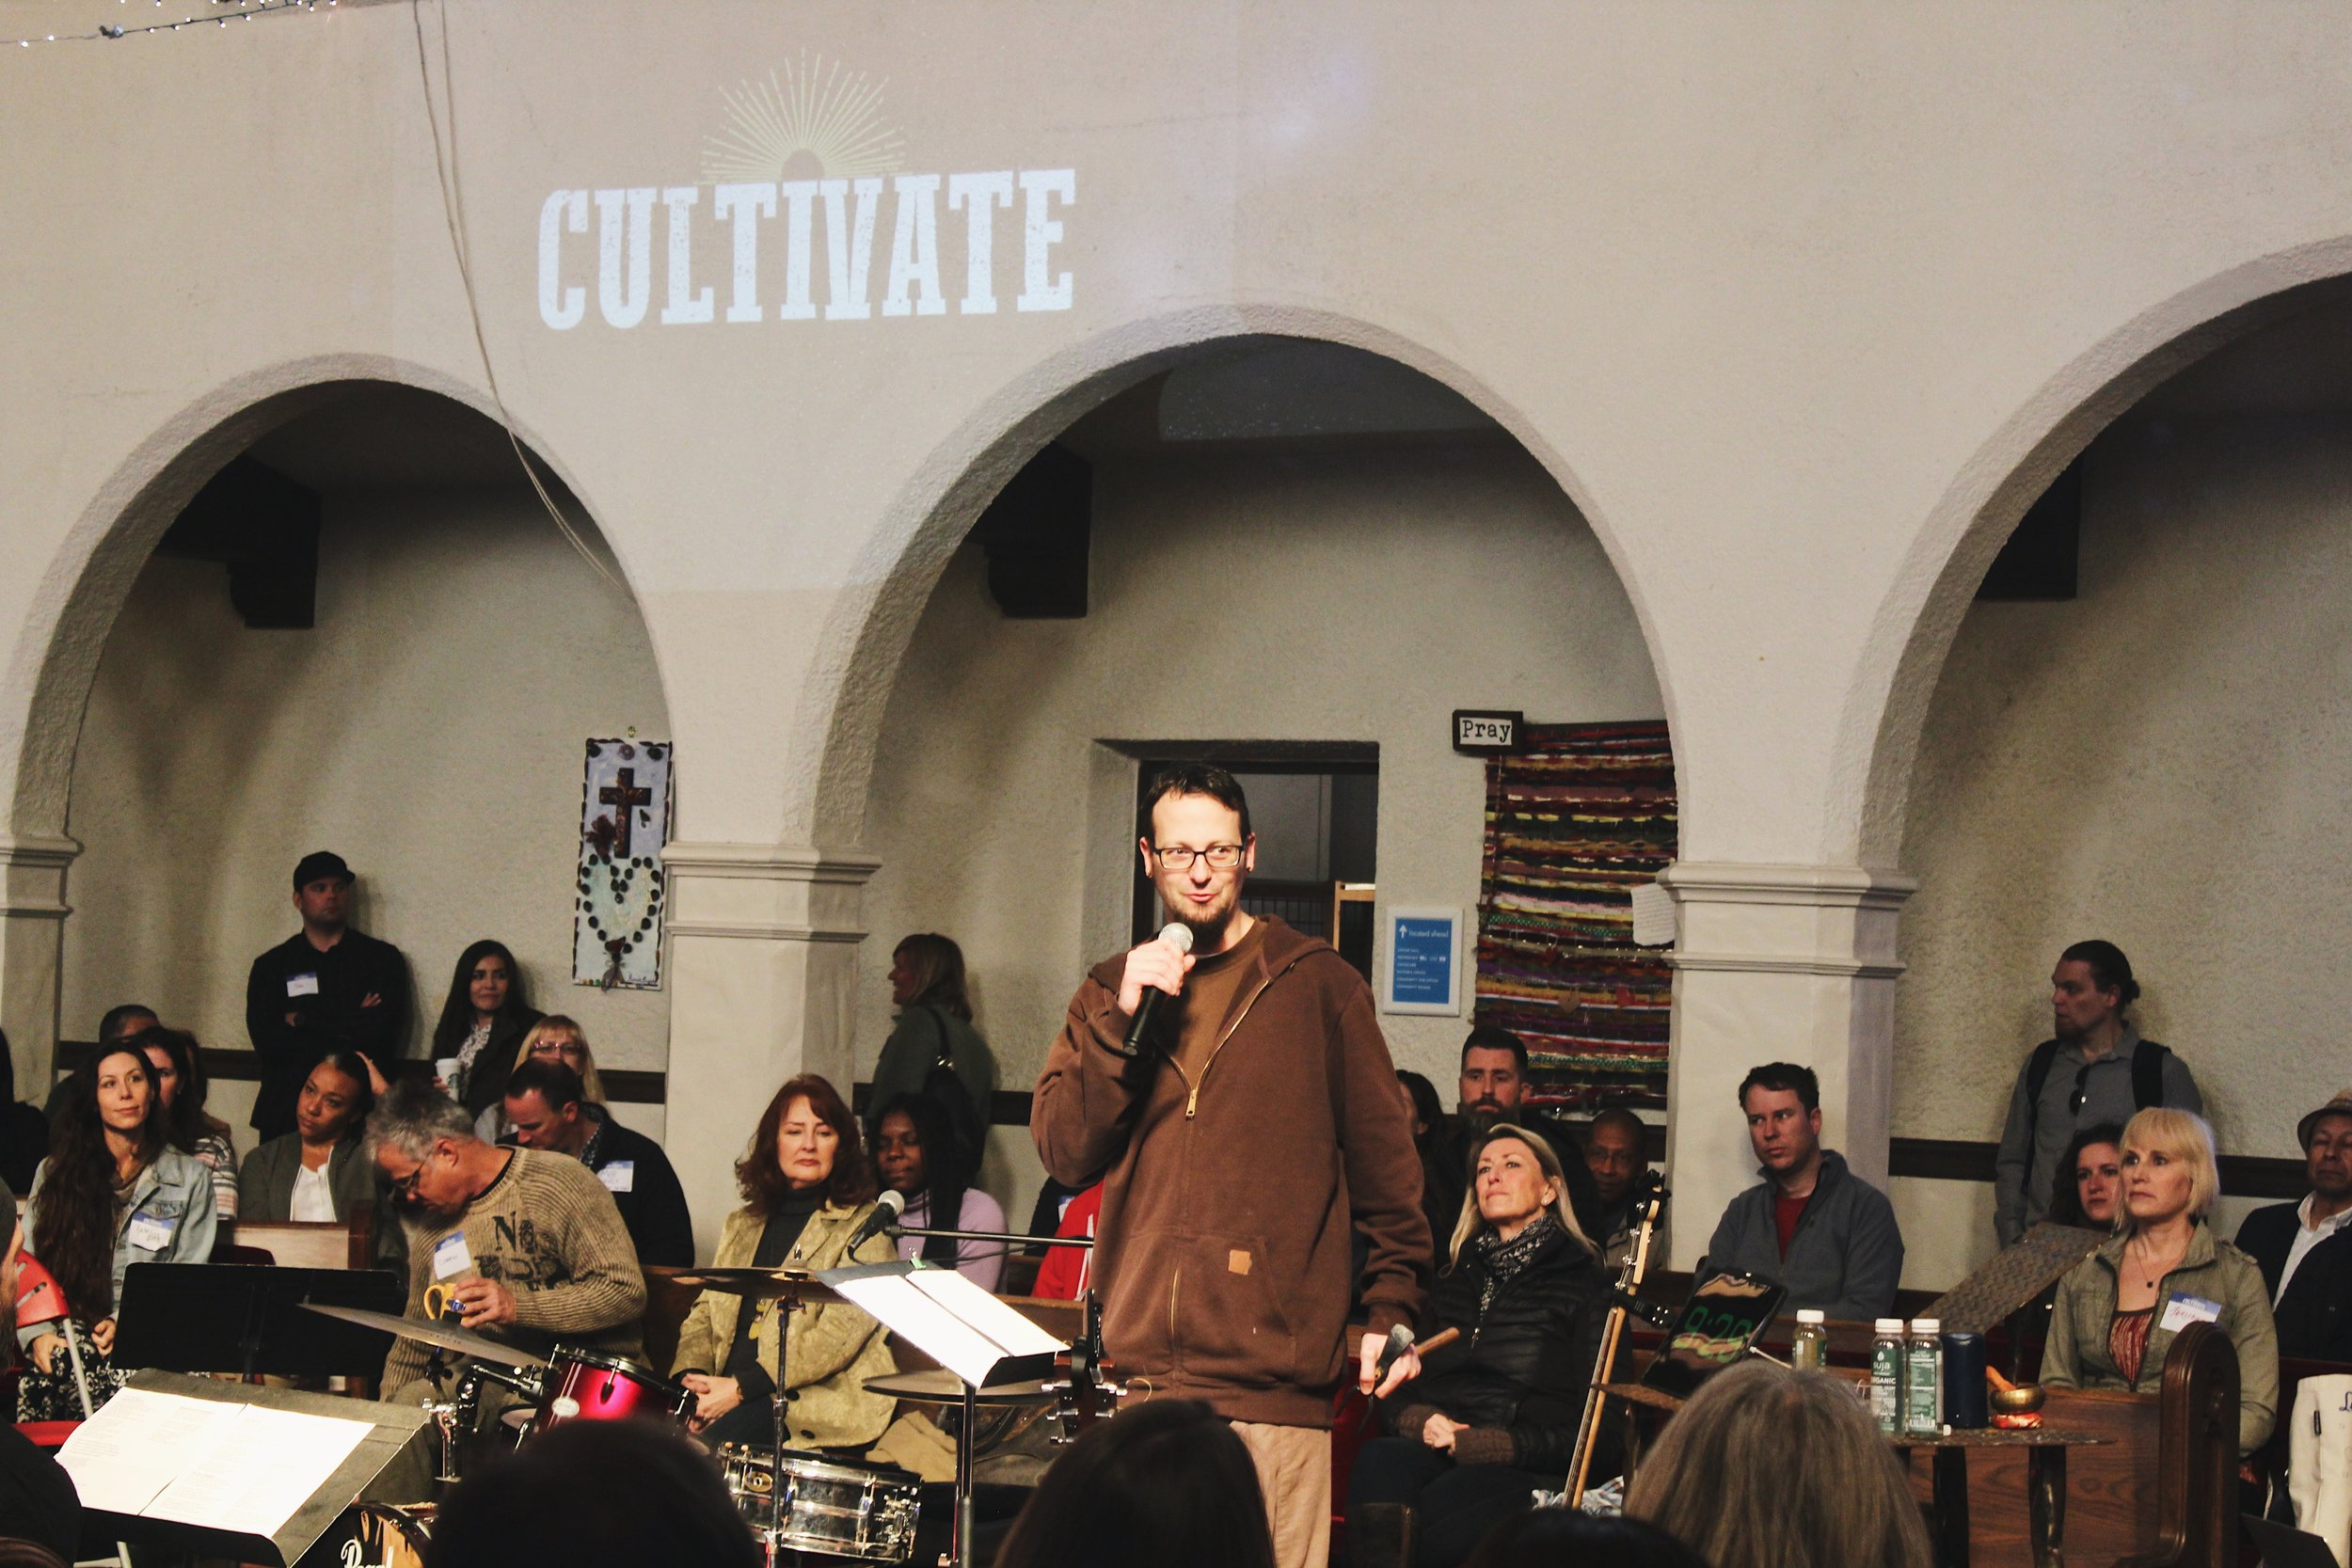 Cultivate Gathering [5].JPG